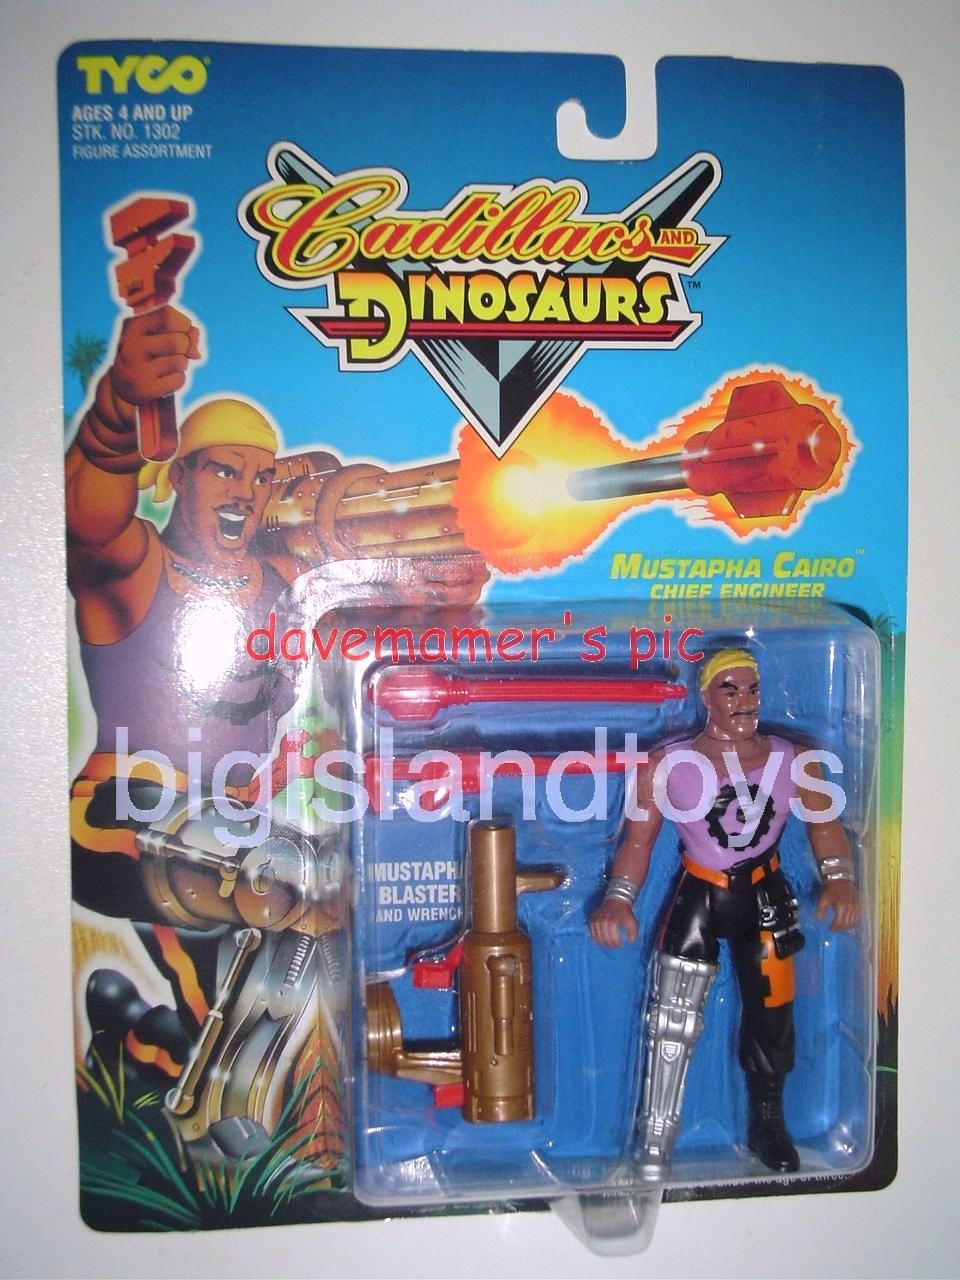 Cadillacs and Dinosaurs    MUSTAPHA CAIRO Chief Engineer